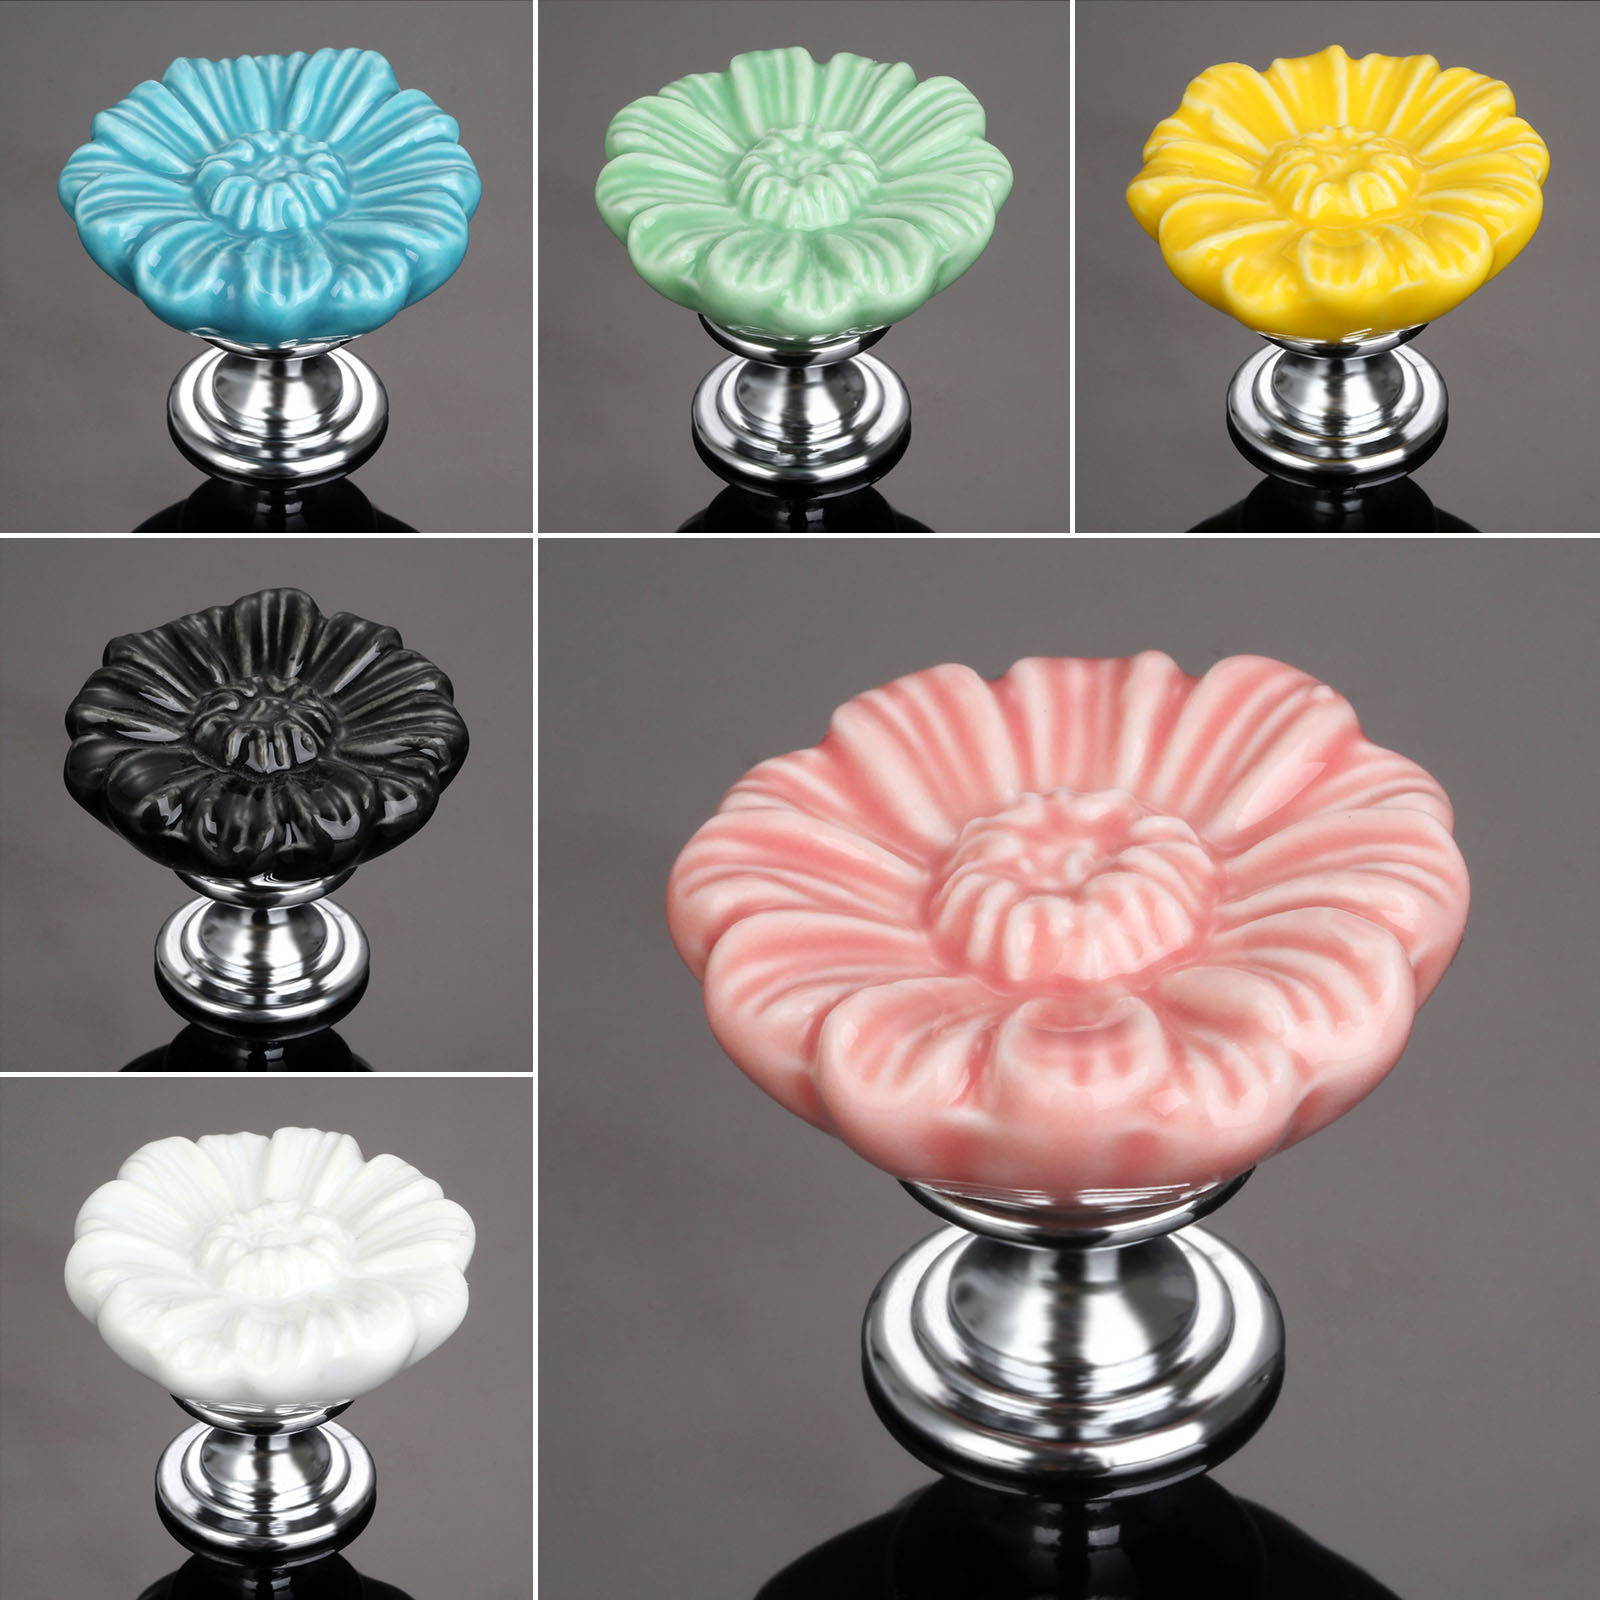 Furniture Handles Vintage Flower Cabinet Knobs and Handles Ceramic Door Knob Cupboard Drawer Kitchen Pull Handle retro vintage kitchen drawer cabinet door flower handle furniture knobs hardware cupboard antique metal shell pull handles 1pc